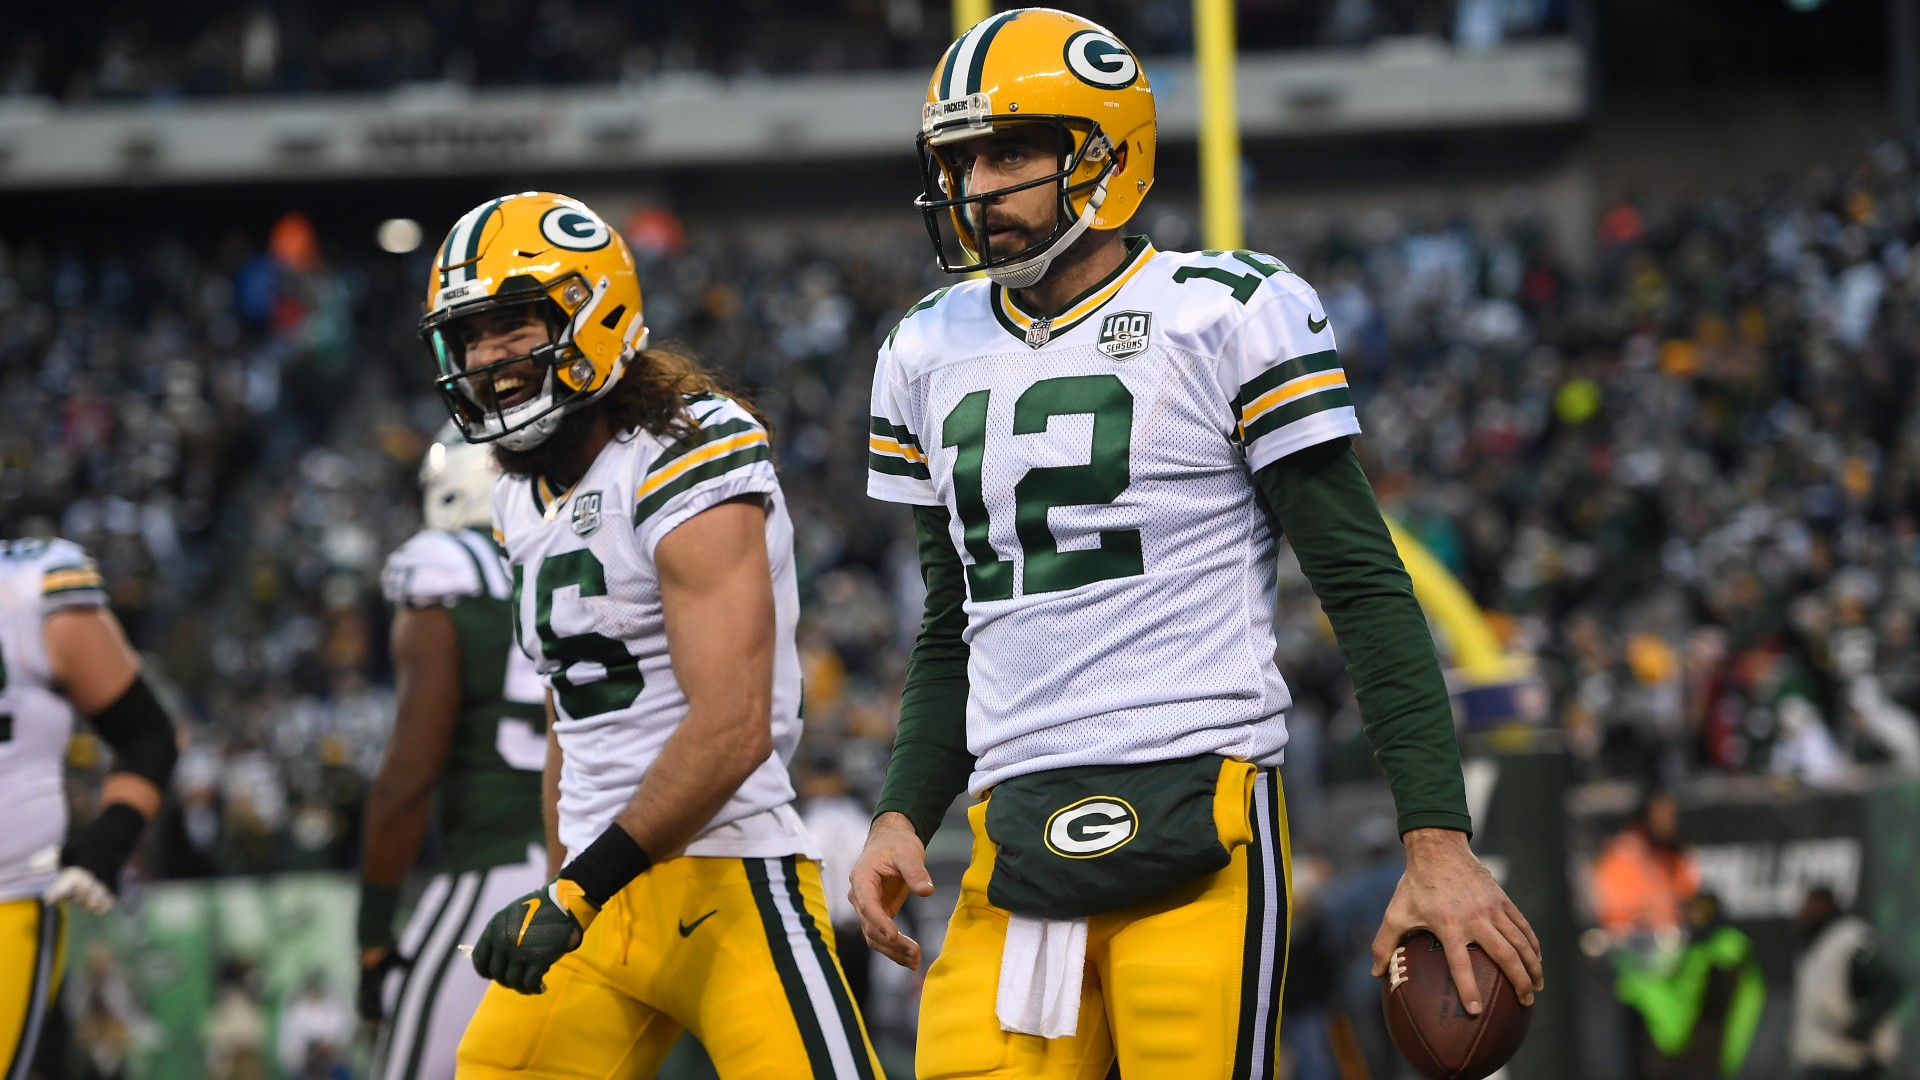 Aaron Rodgers rumors: Jake Kumerow's exit was the 'death knell' in relation to Packers